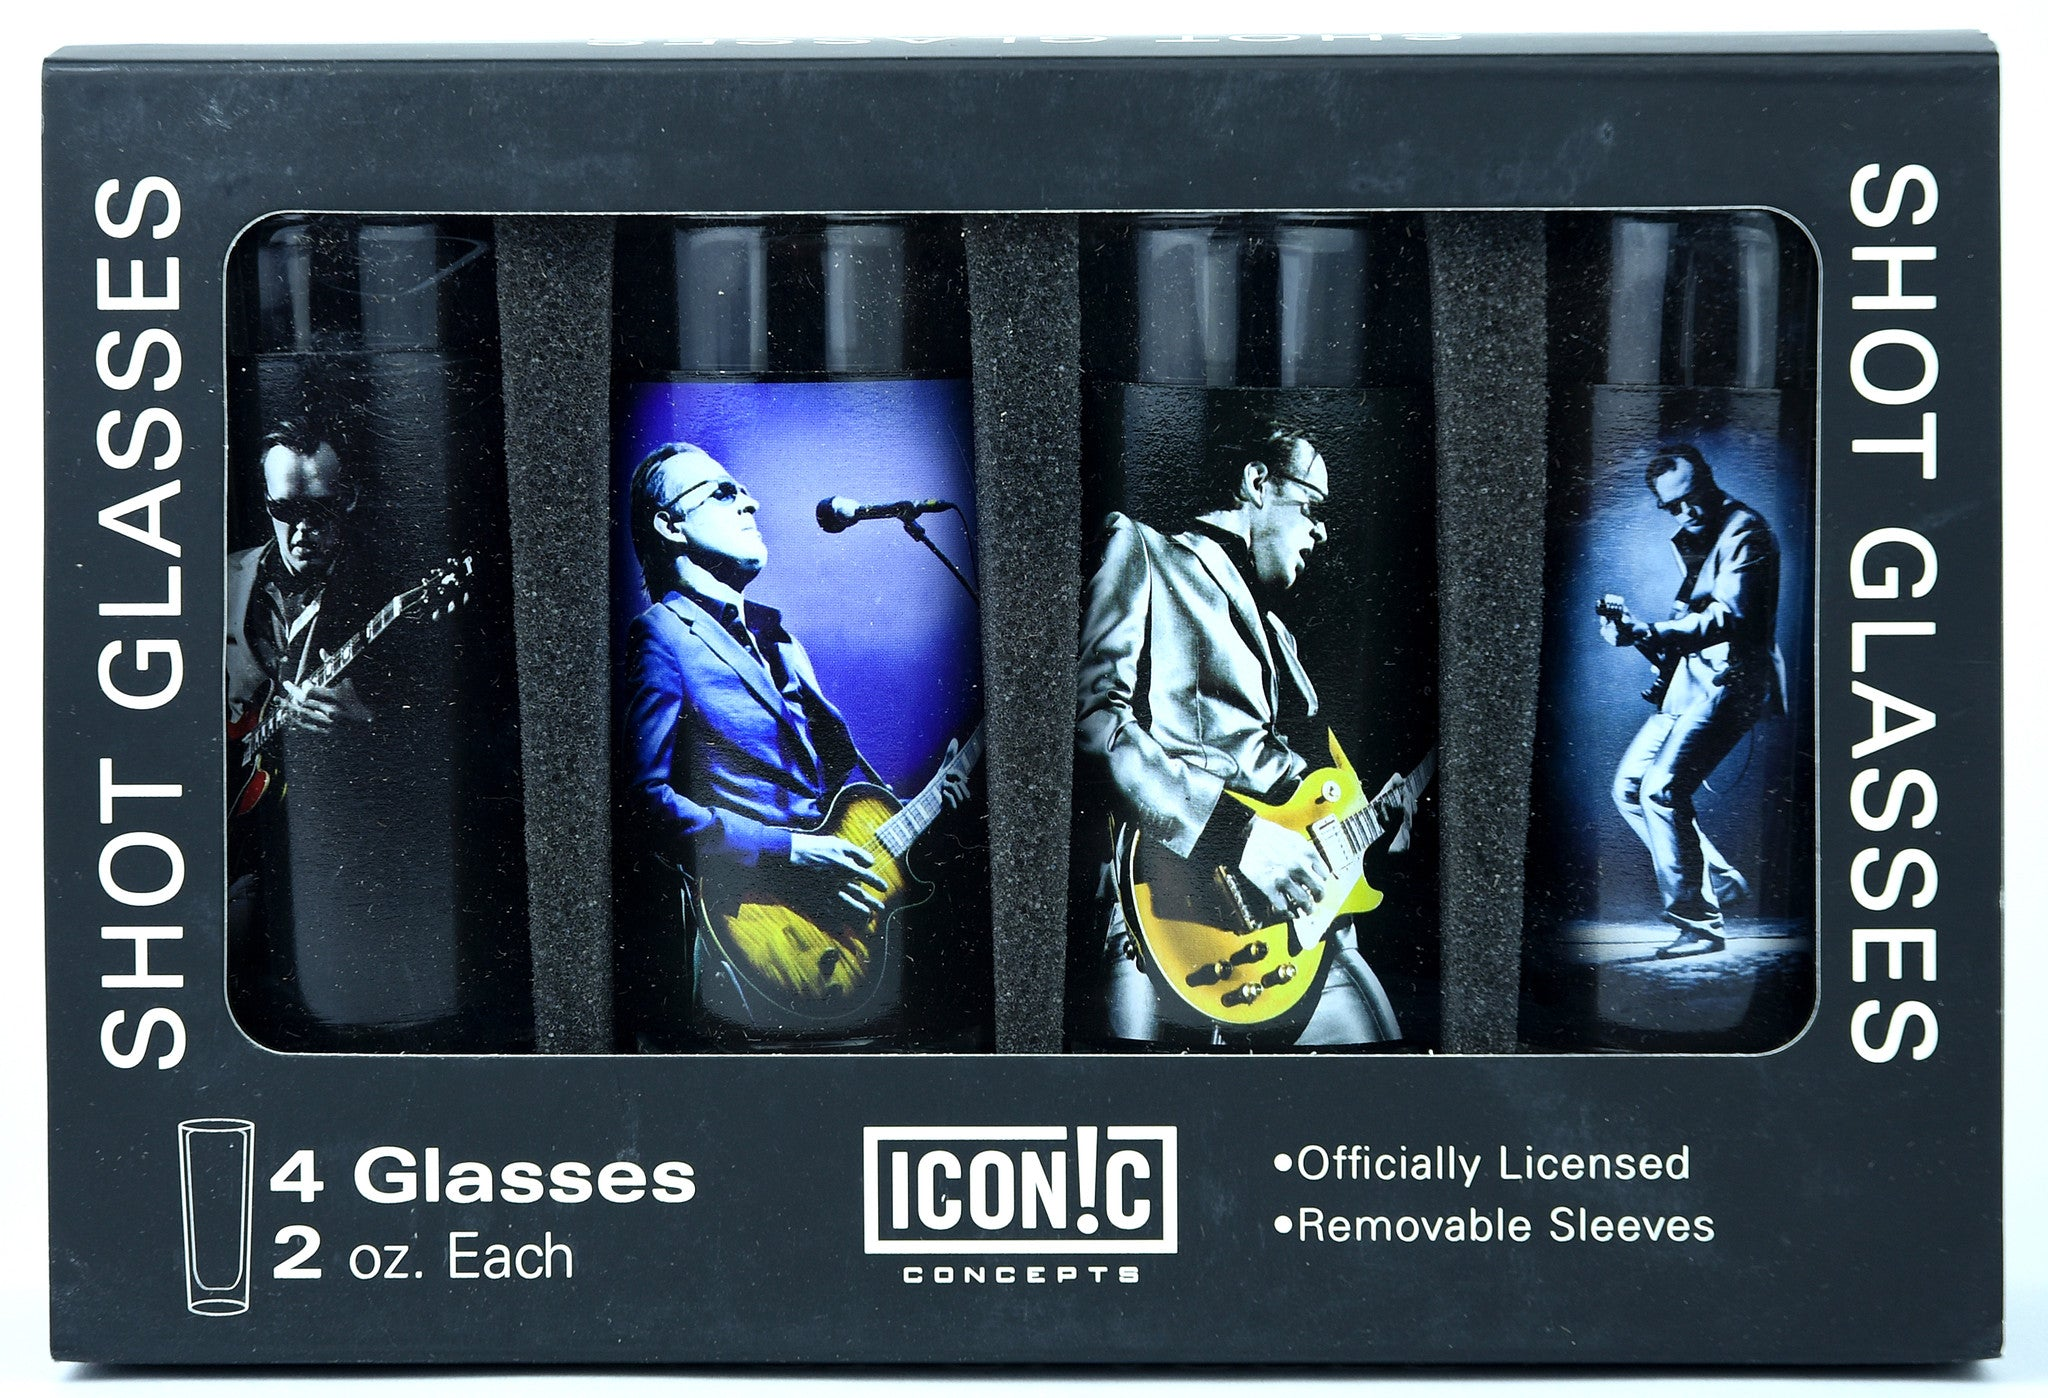 Joe Bonamassa Shot Glasses 4Pack With Aluminum Sleeves